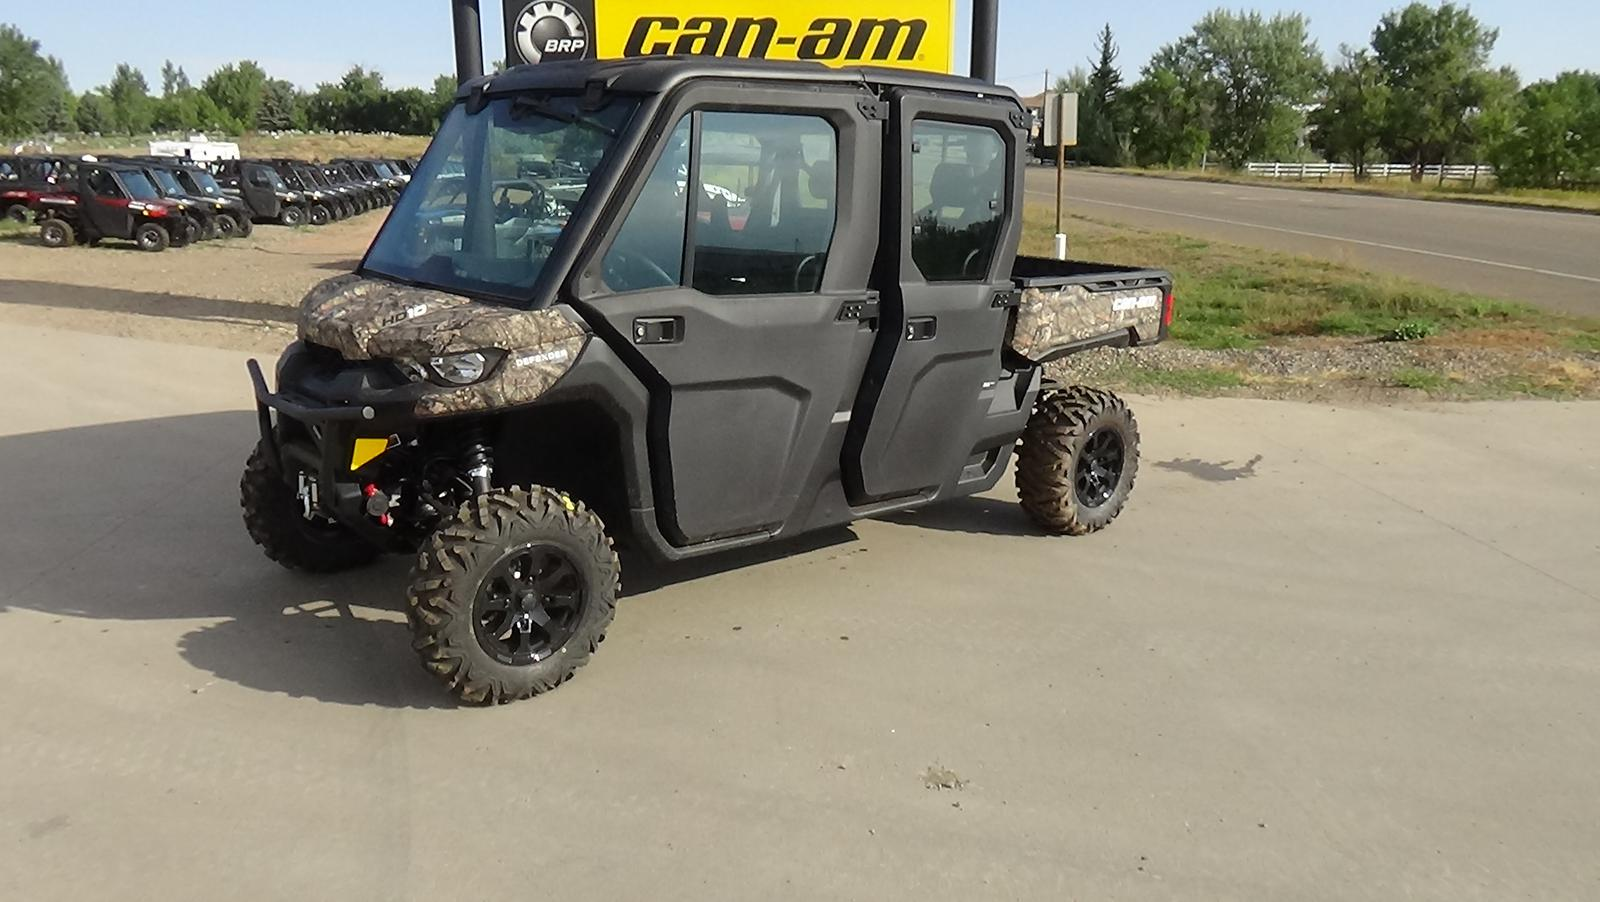 2019 can-am defender max xt� hd10 - break-up country camo�